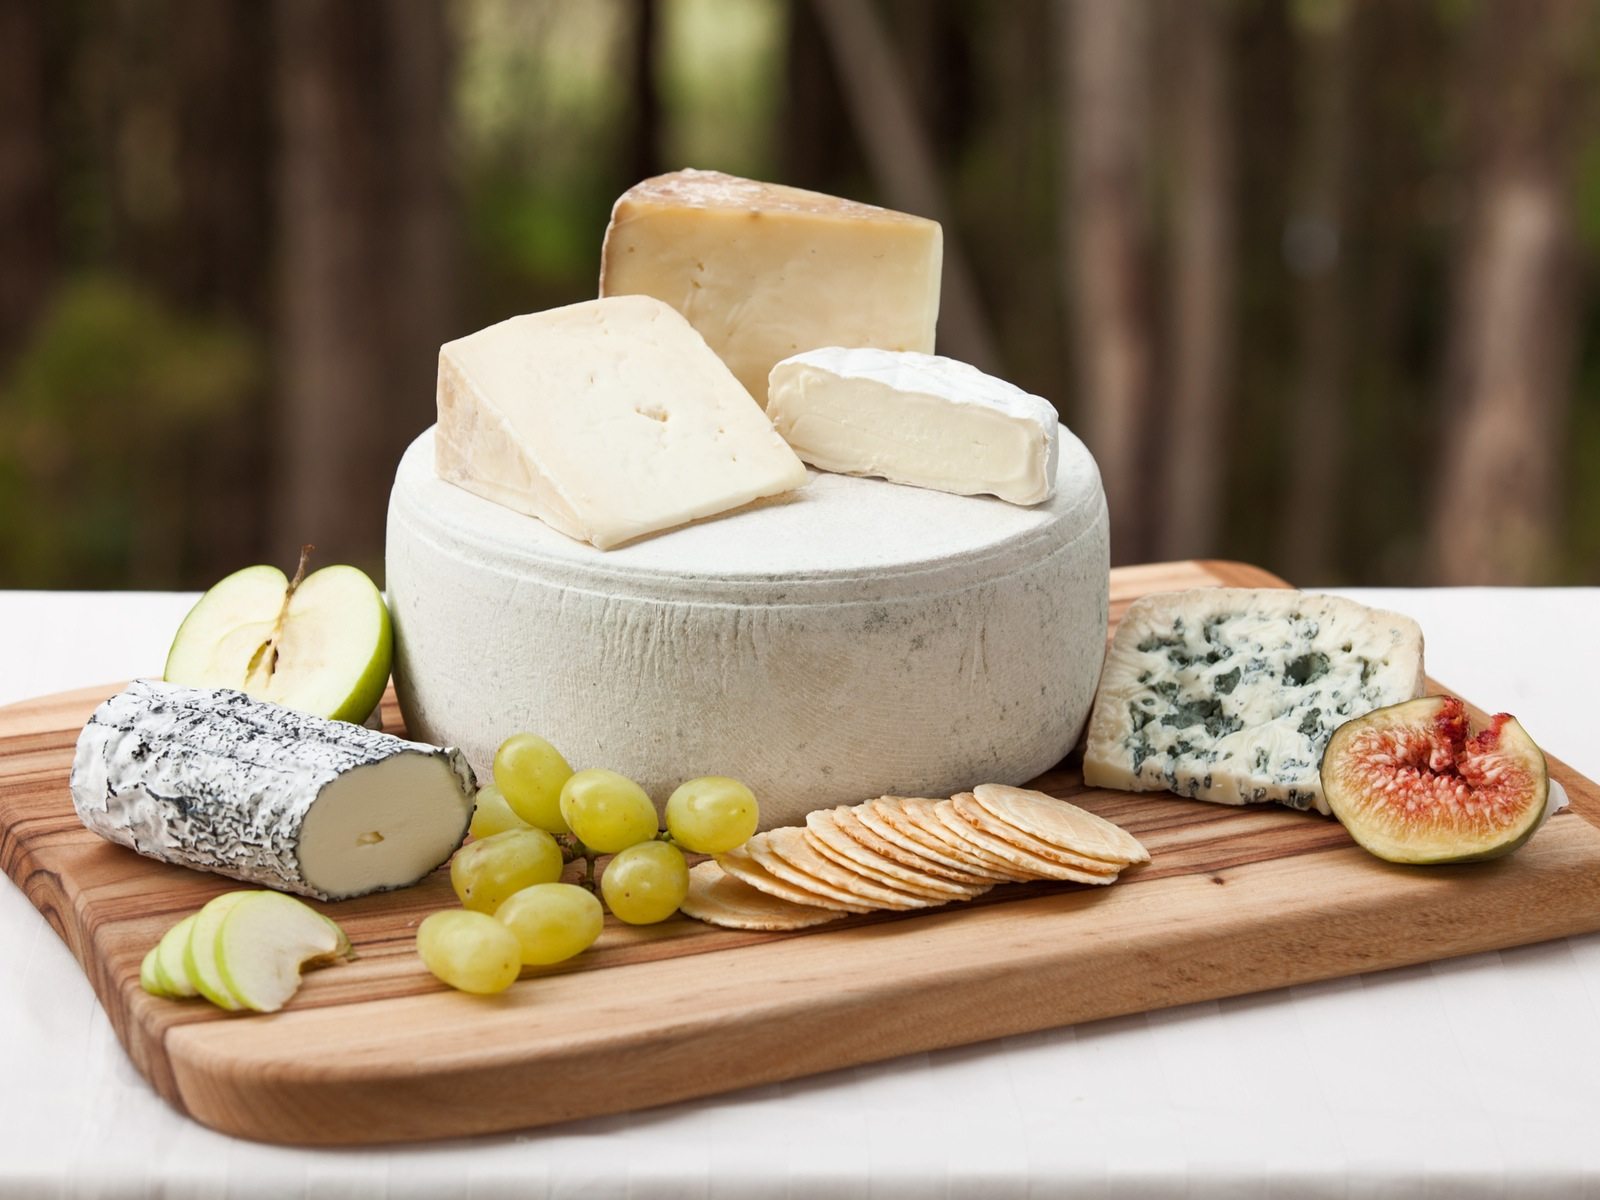 Exciting range of styles from Red Hill Cheese, Mornington Peninsula